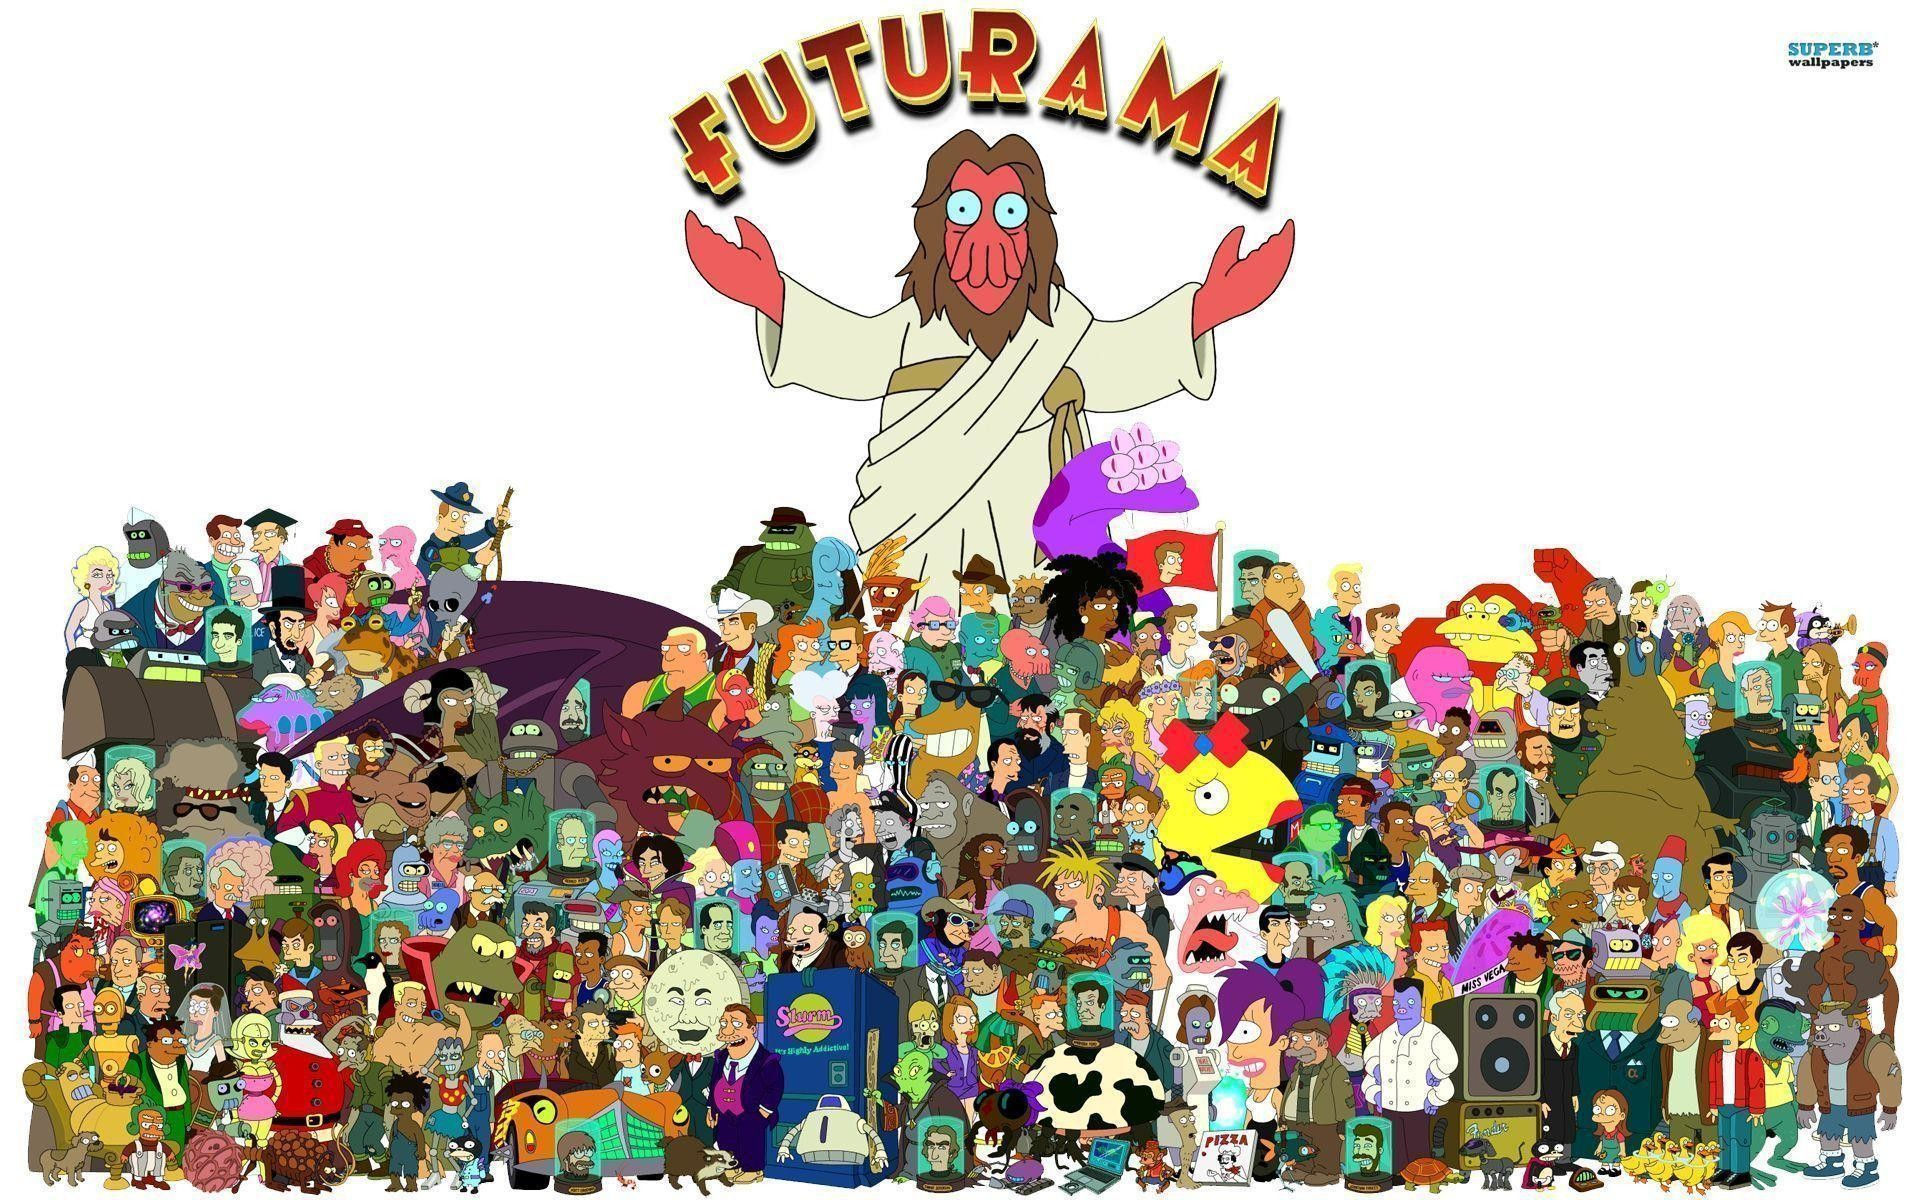 1920x1200 Desktop Wallpaper Collection: Futurama Edition | mindcontrolindustries